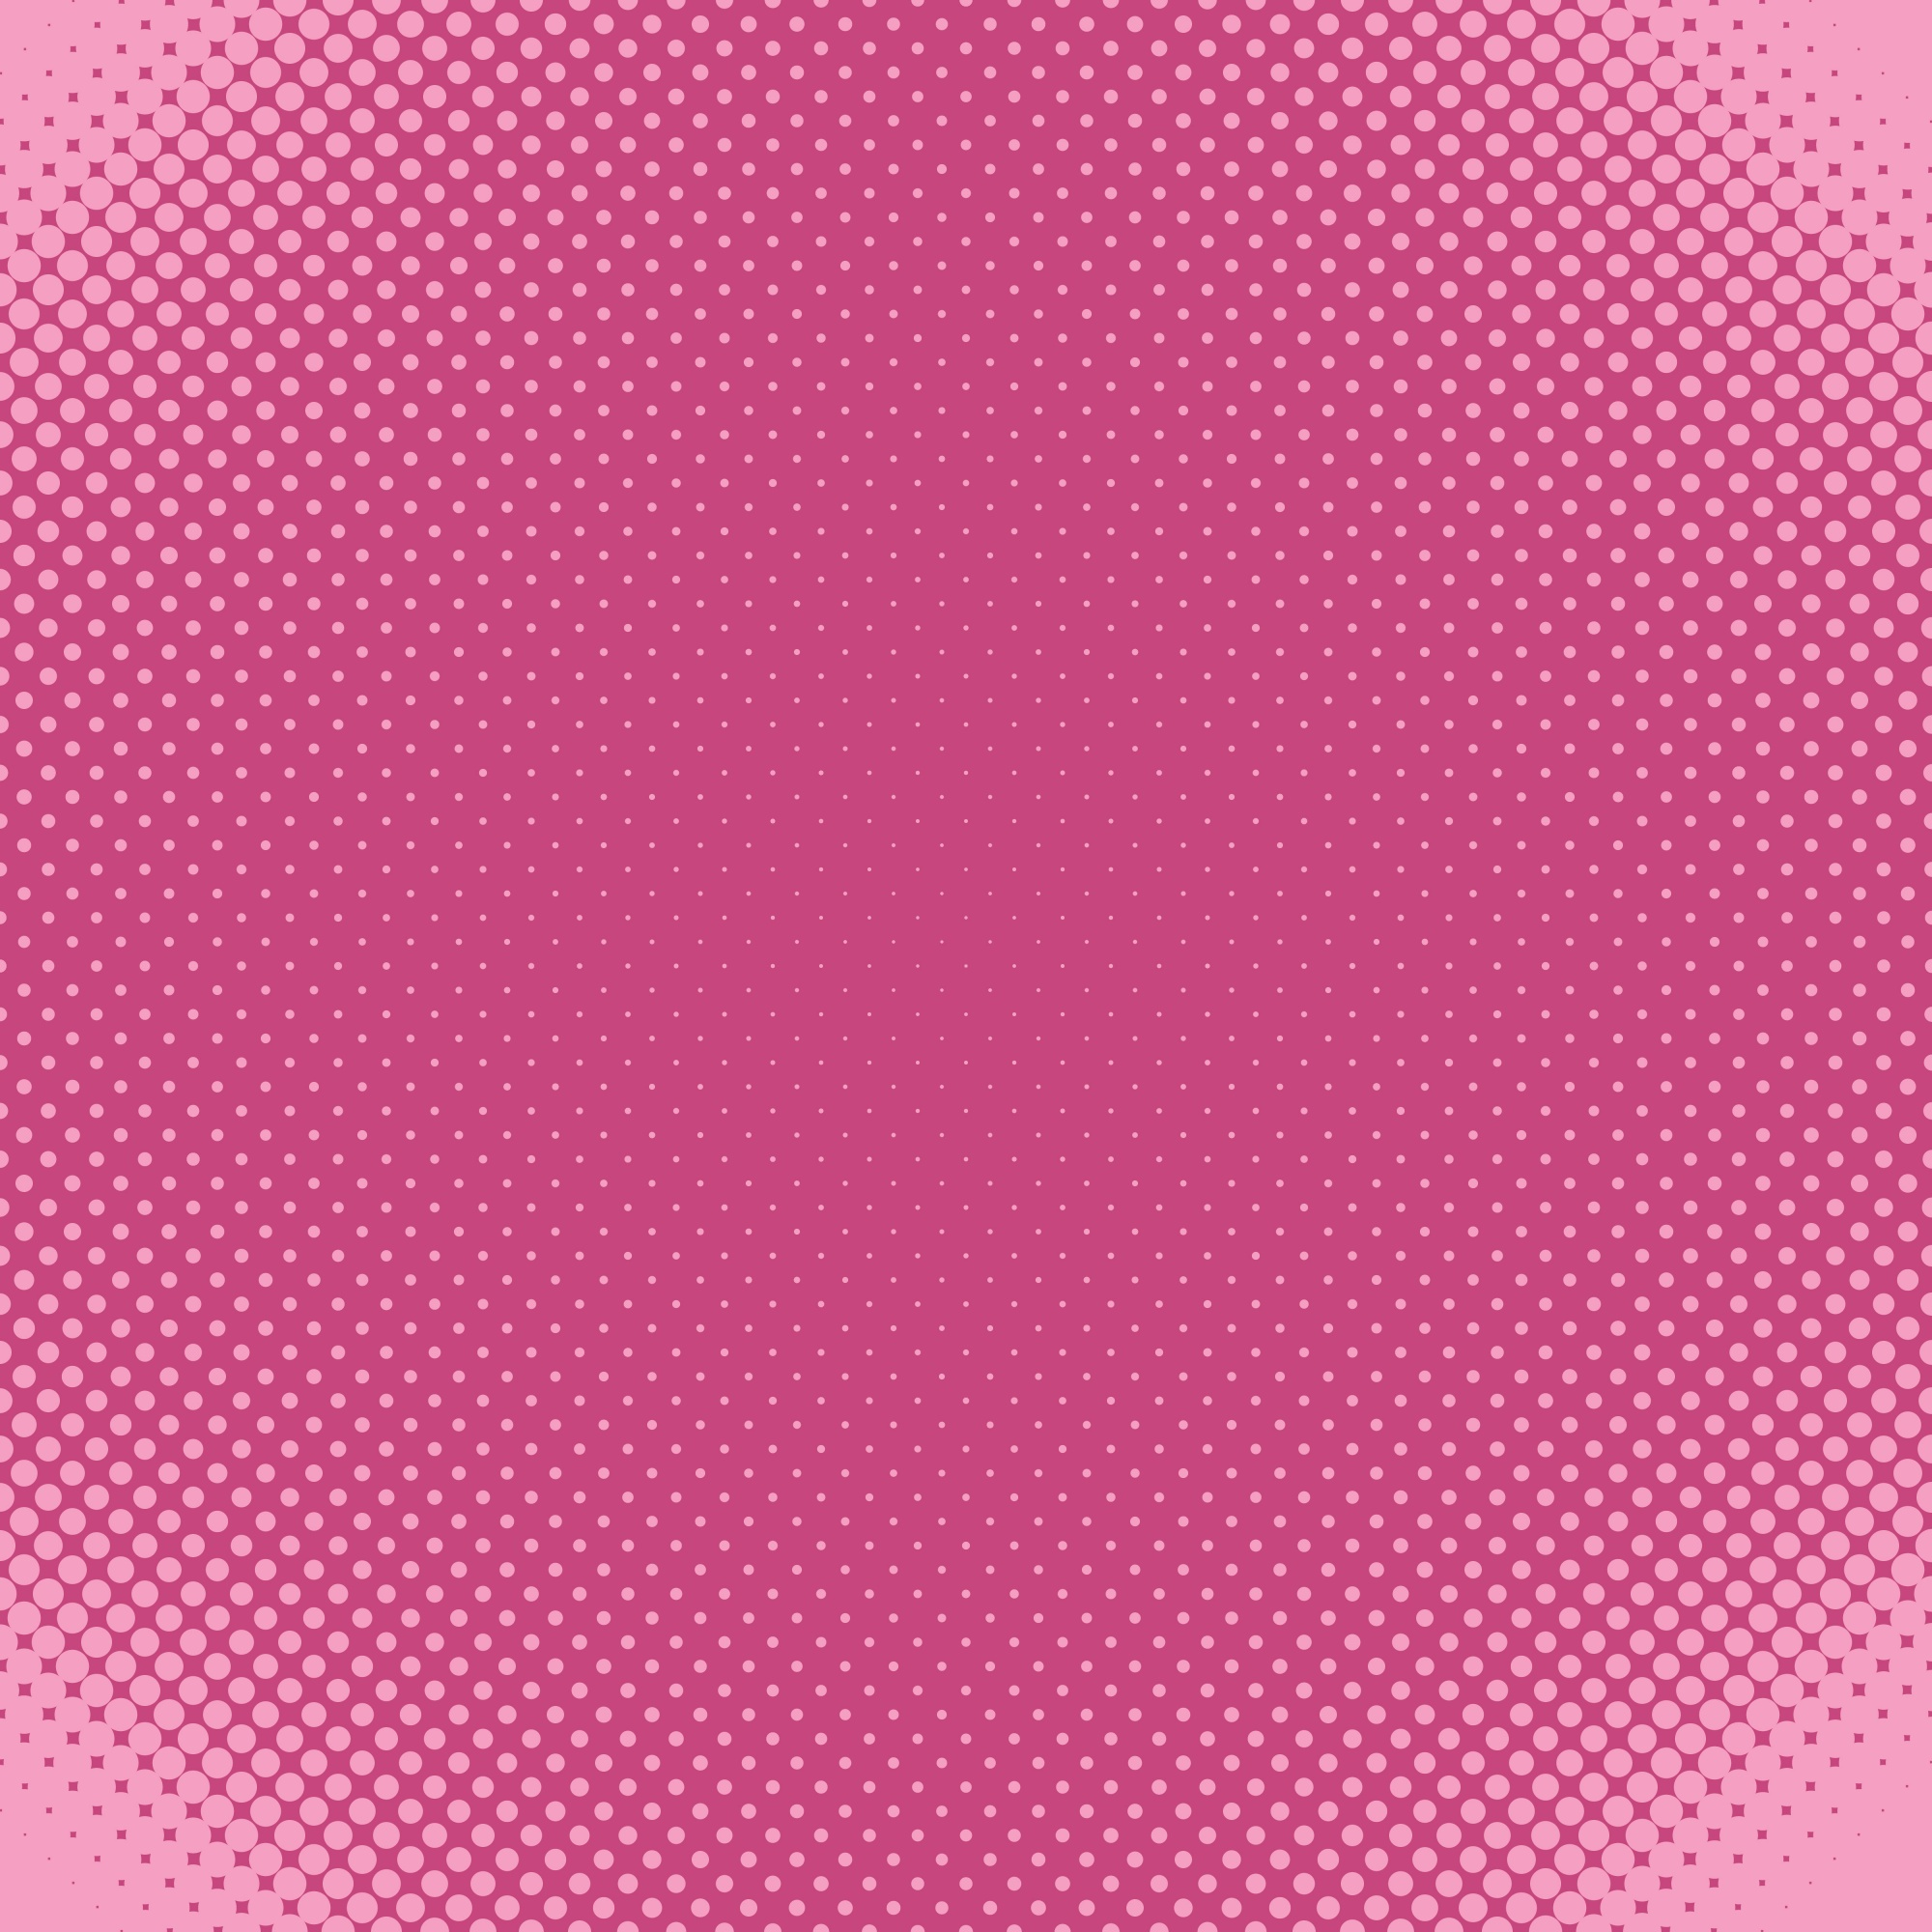 Geometrical halftone dot pattern background - vector graphic from circles in varying sizes